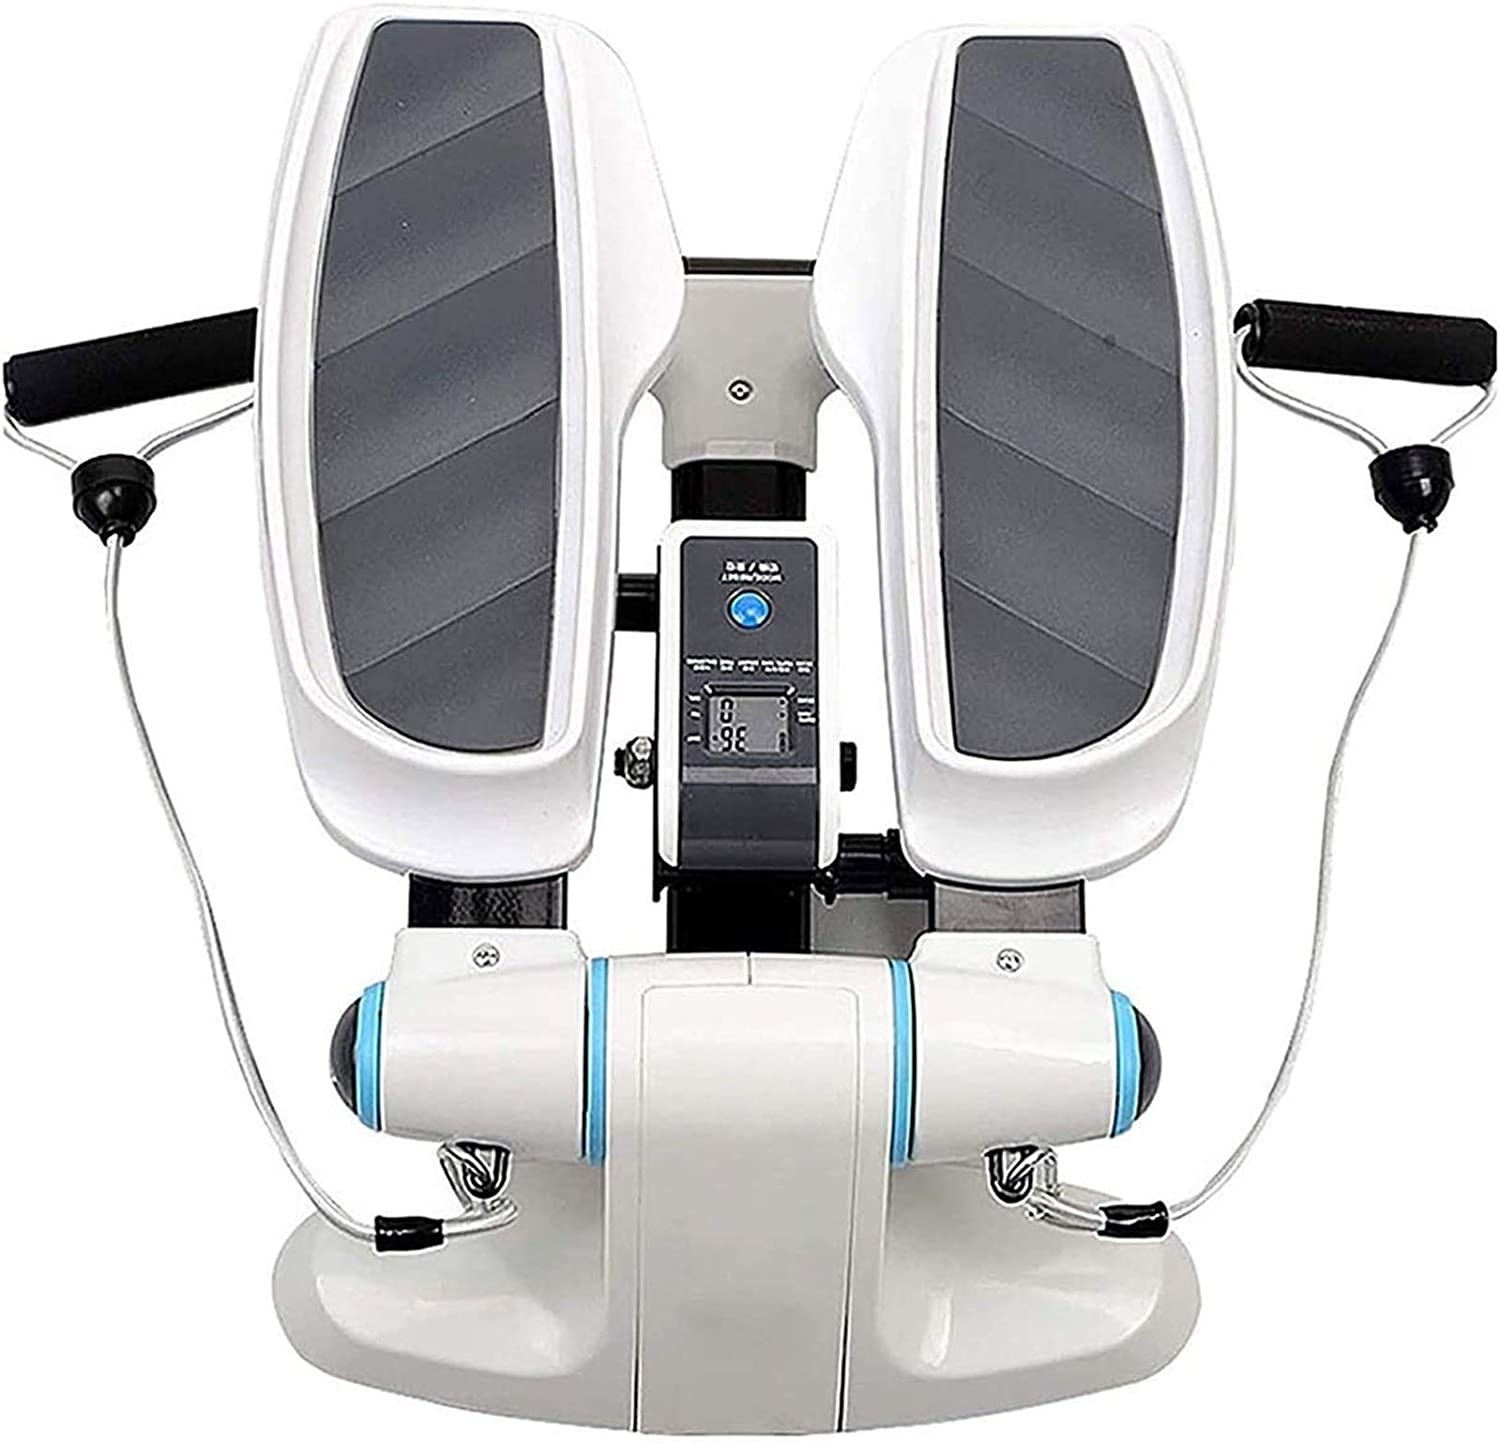 Product DNZJ Steppers for Exercise Super sale period limited with Machine Multifun Step